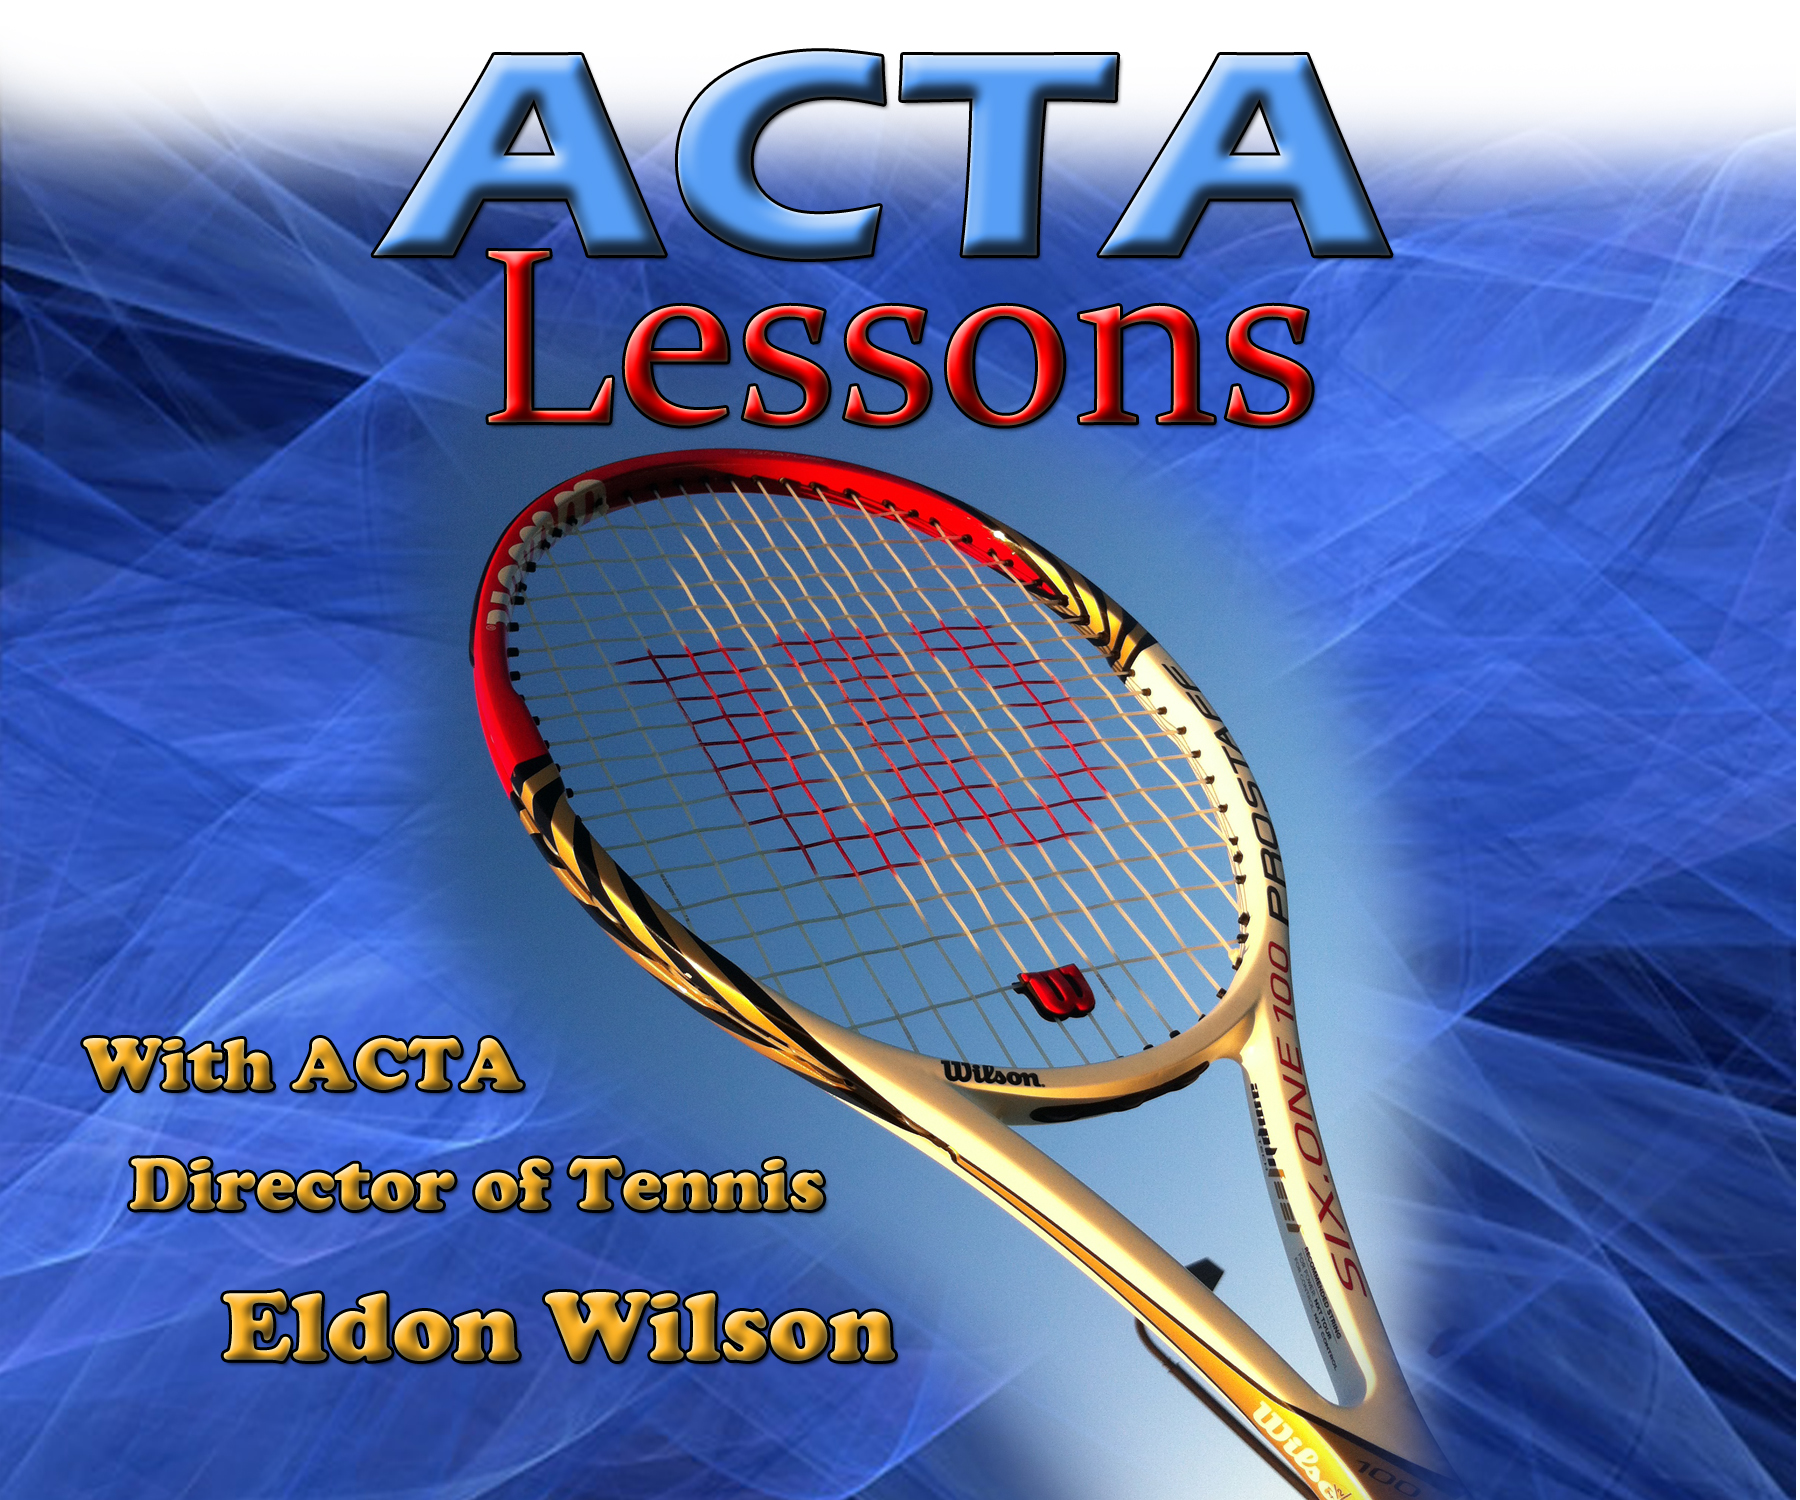 2016 ACTA Bonnies Lessons August